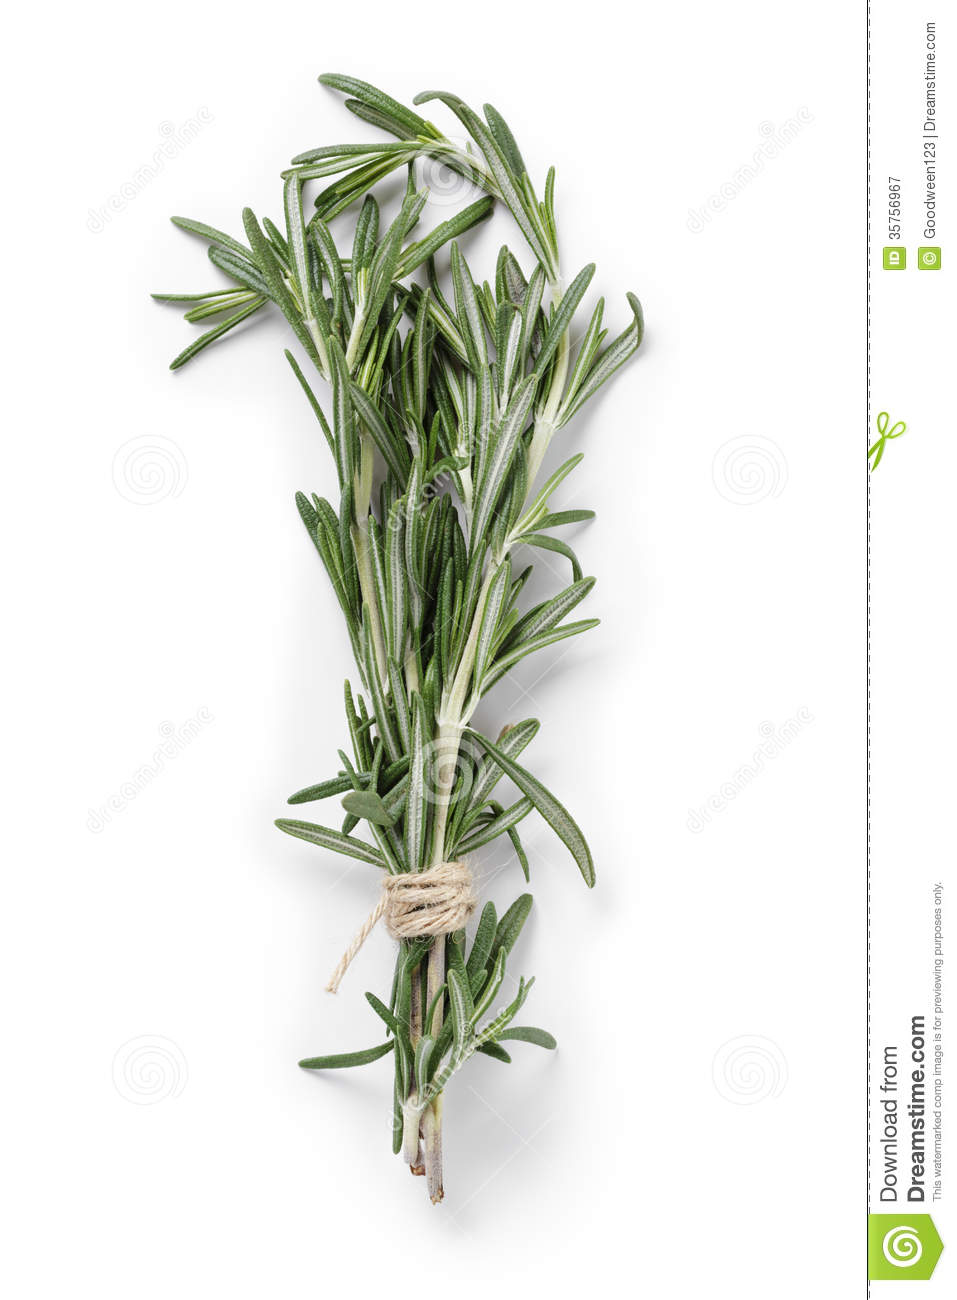 hight resolution of fresh rosemary bunch